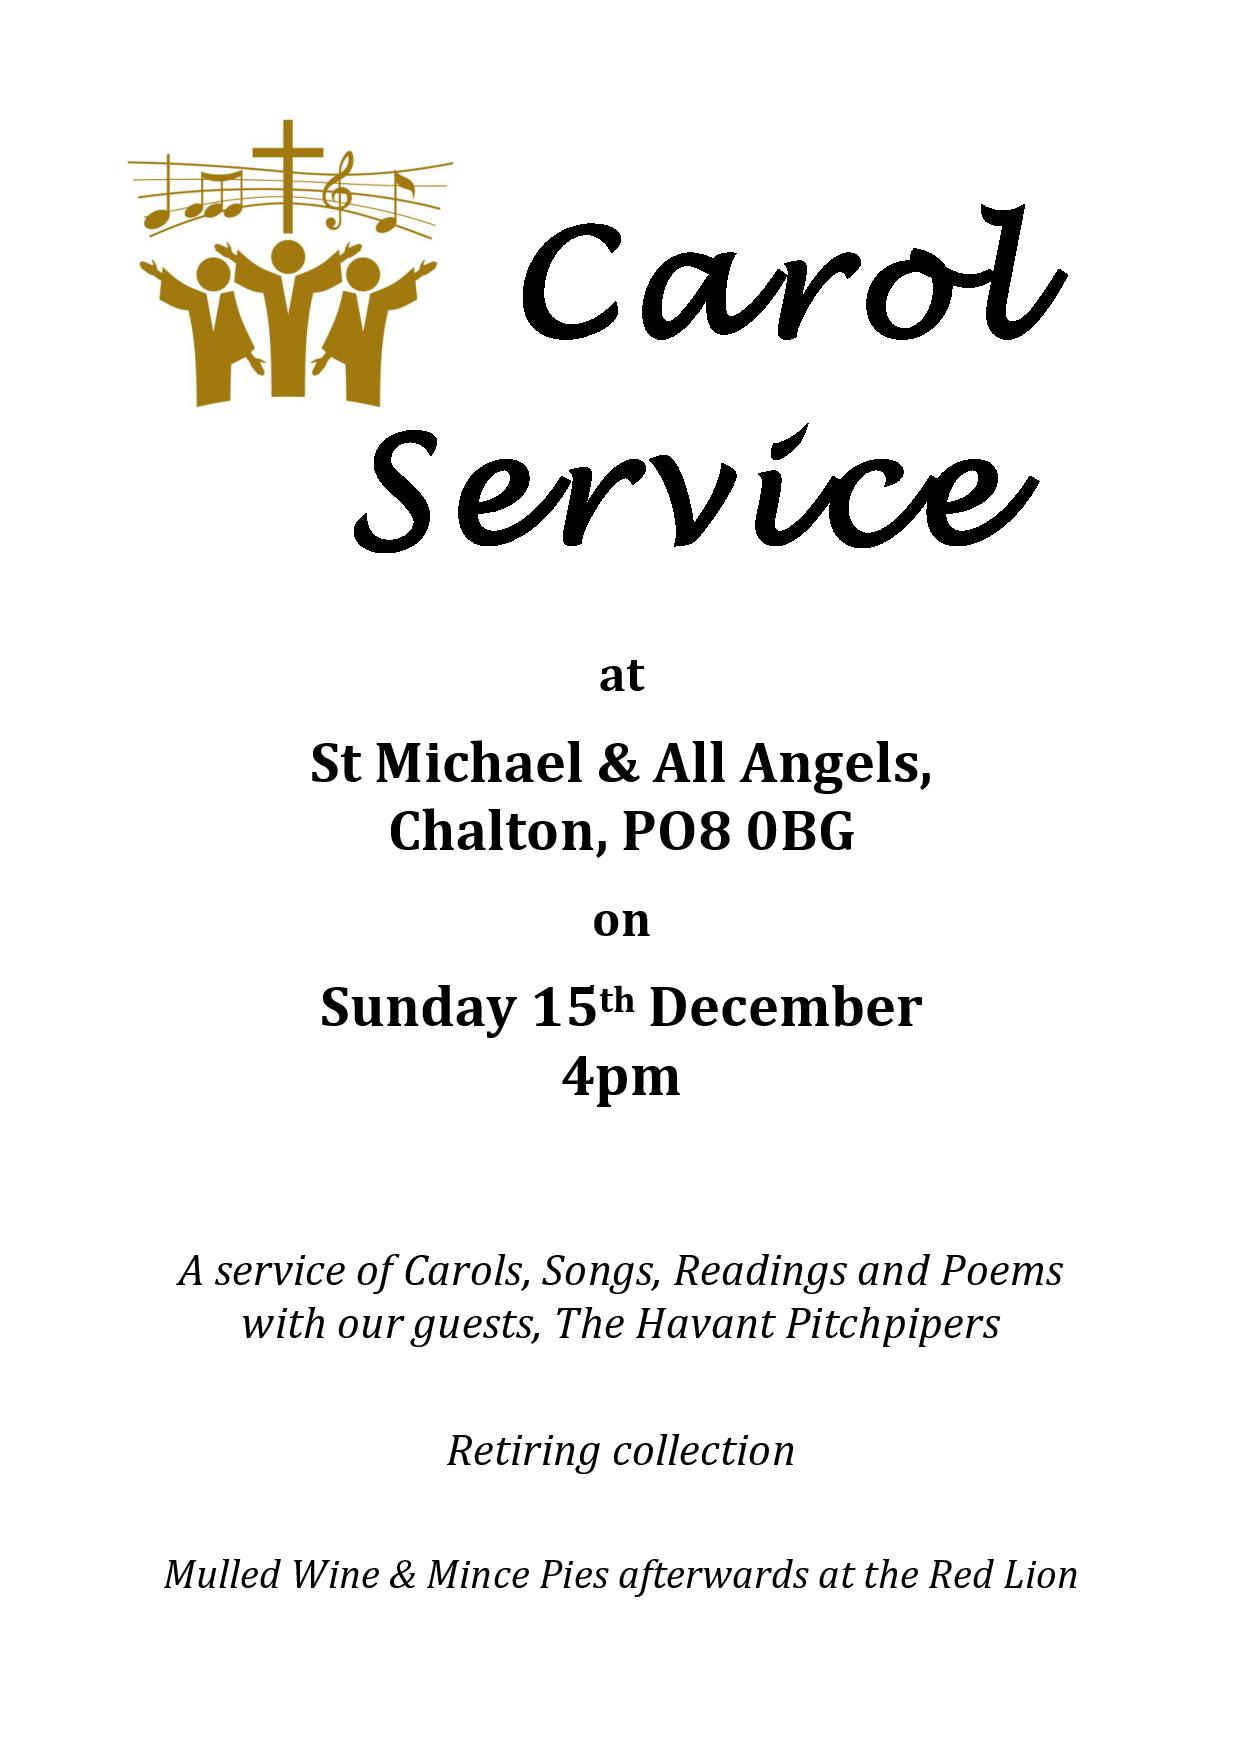 St Michael's Church, Carol Service